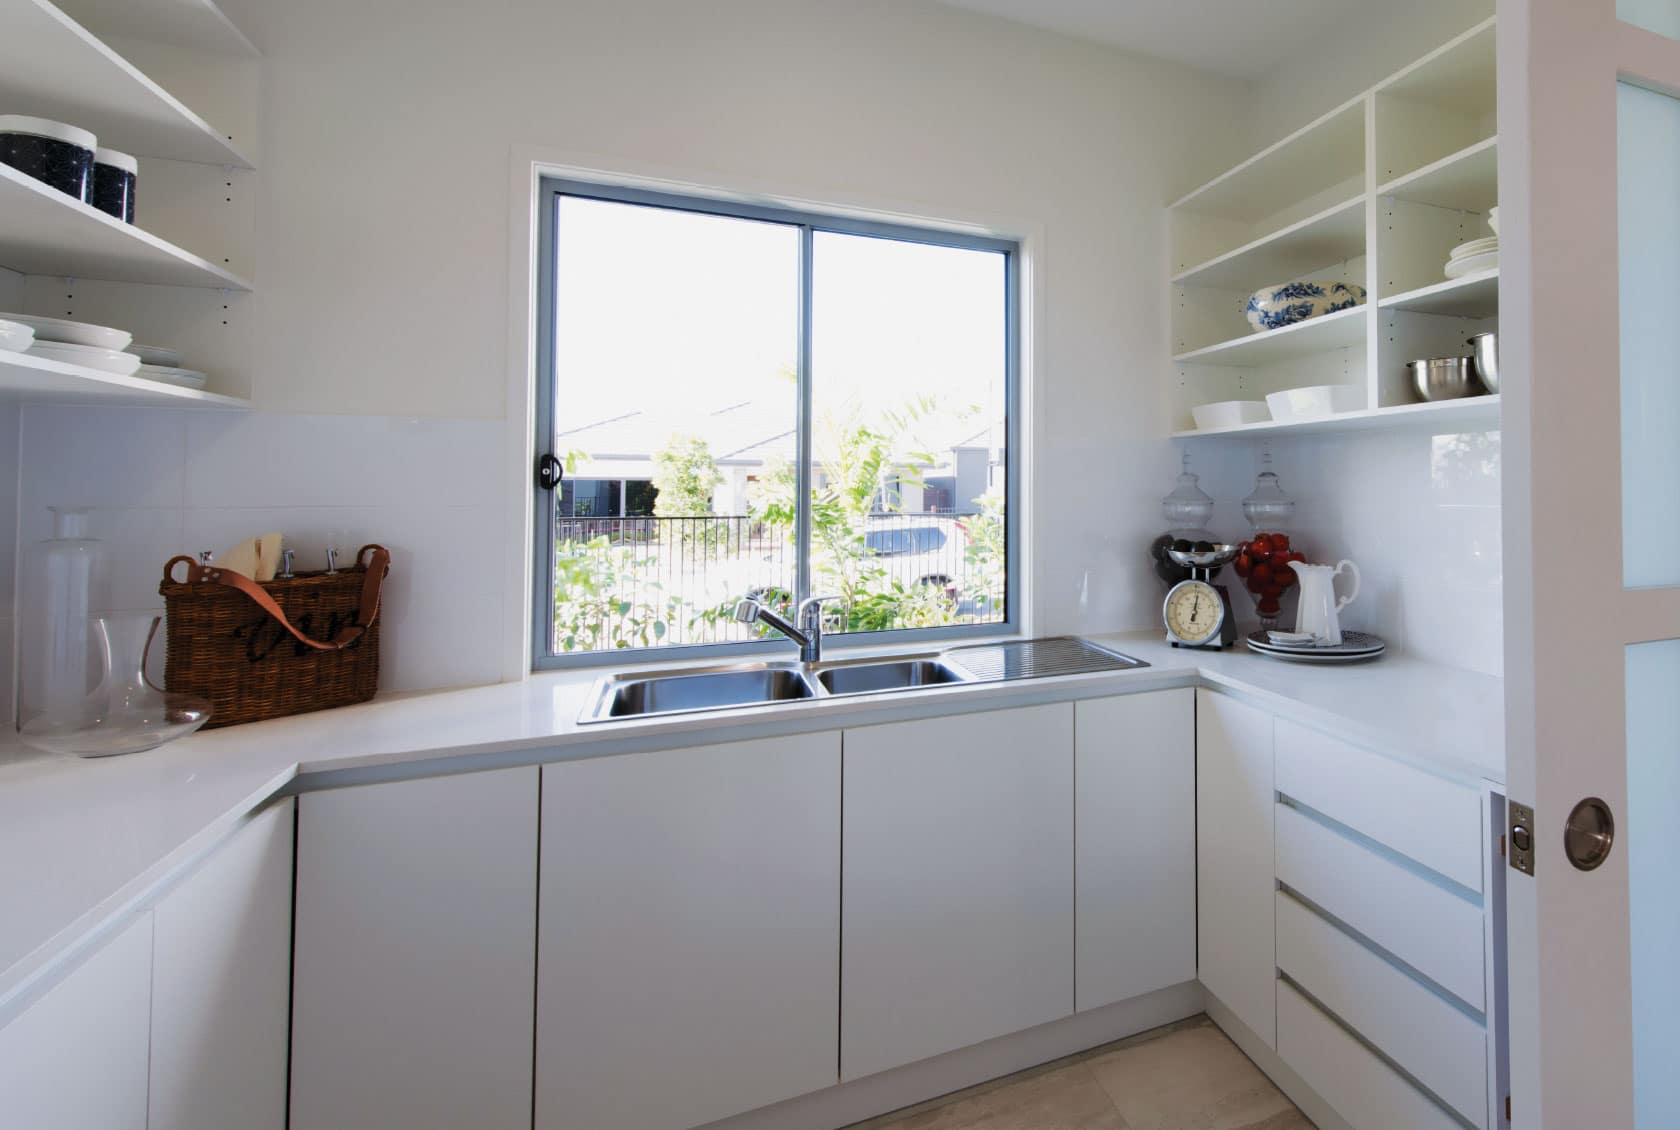 Ultra Silver Aluminium Sliding Windows on a kitchen bench